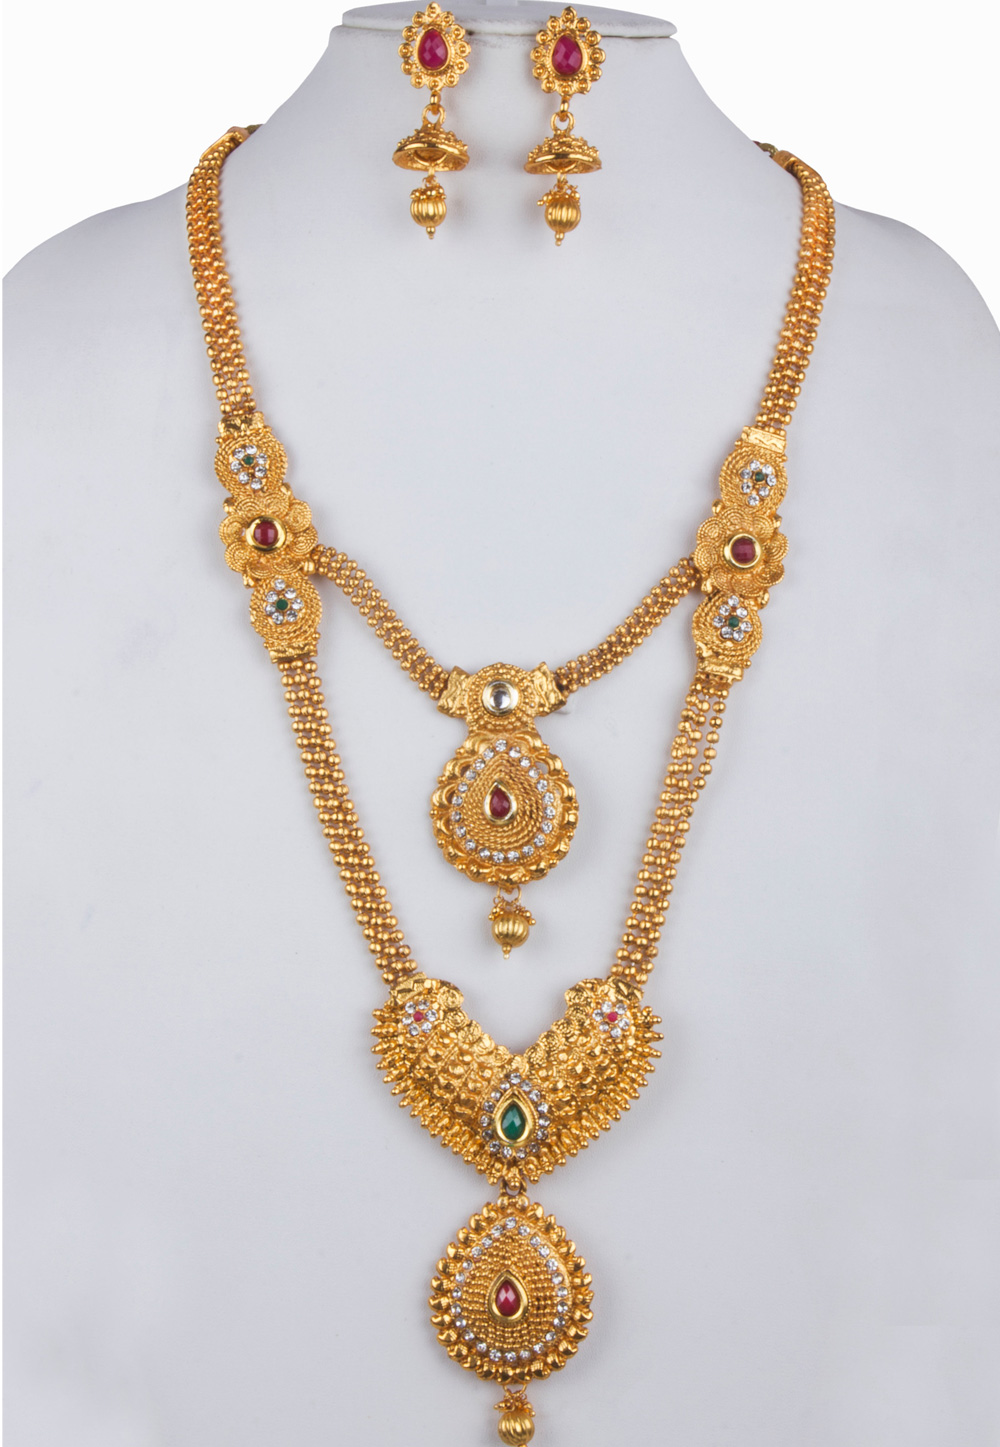 White Alloy Necklace With Earrings 157141